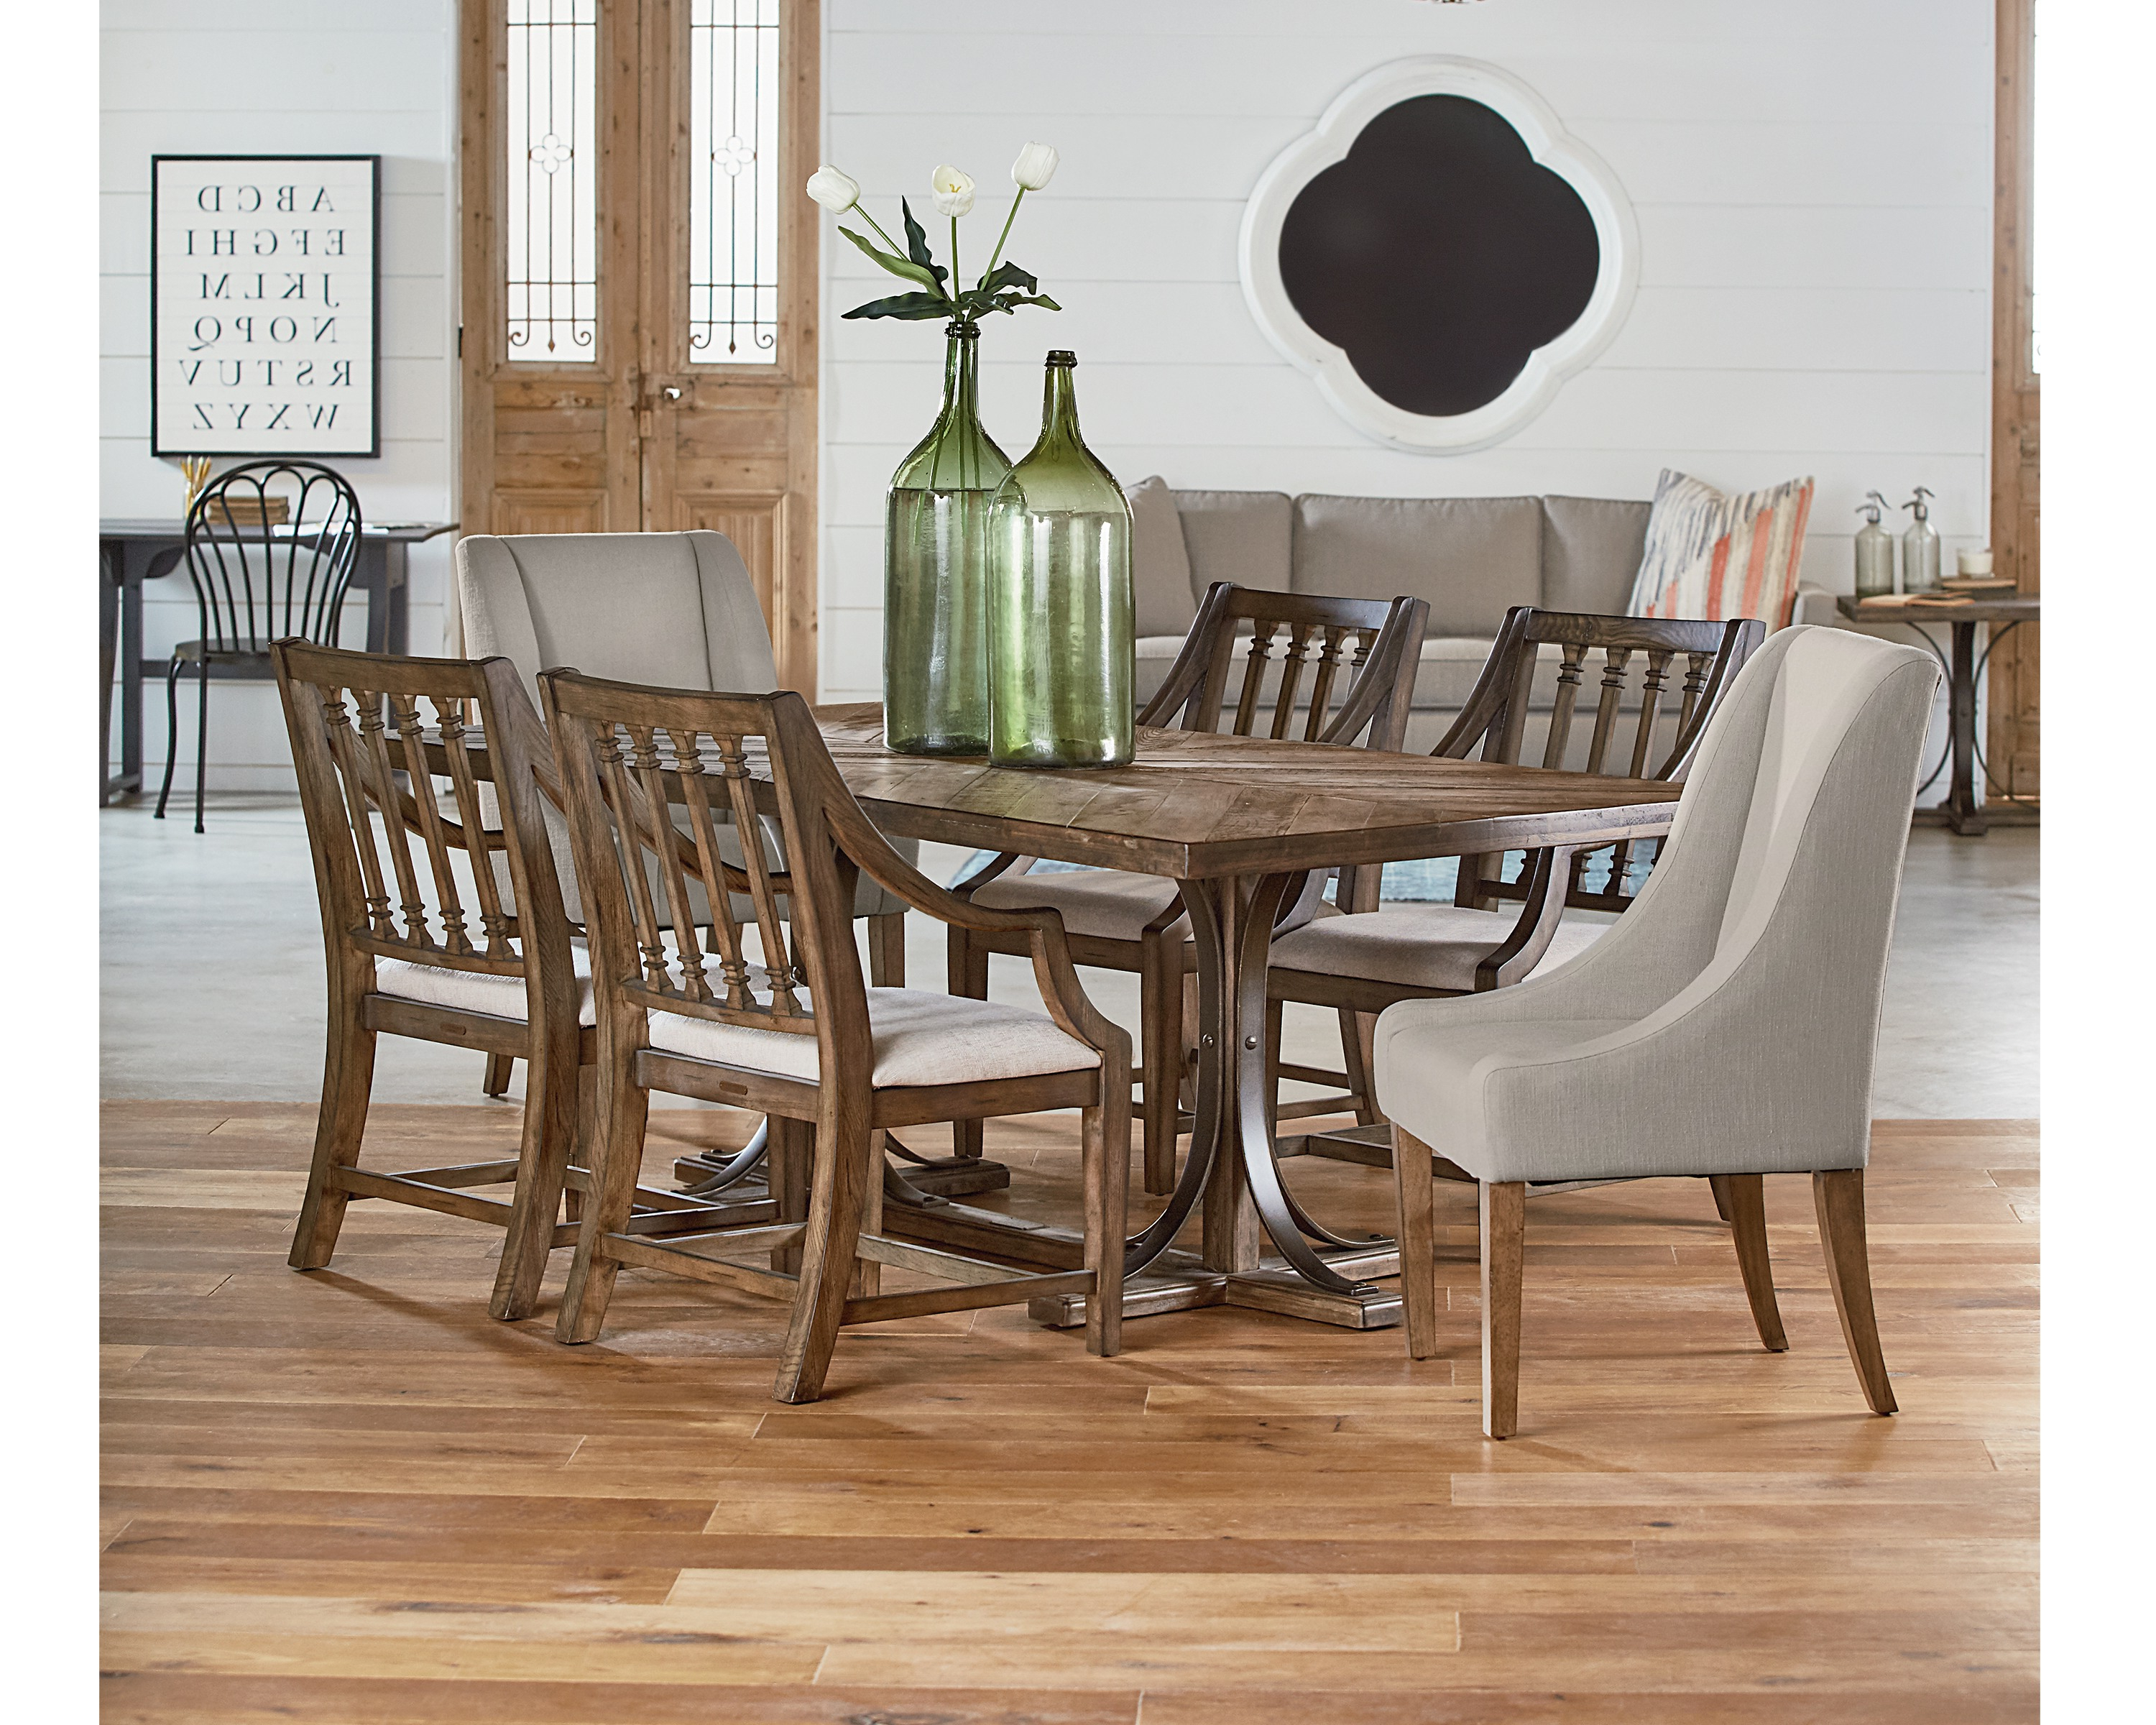 Magnolia Home Iron Trestle Cocktail Tables Intended For Widely Used Iron Trestle + Revival – Magnolia Home (View 8 of 20)